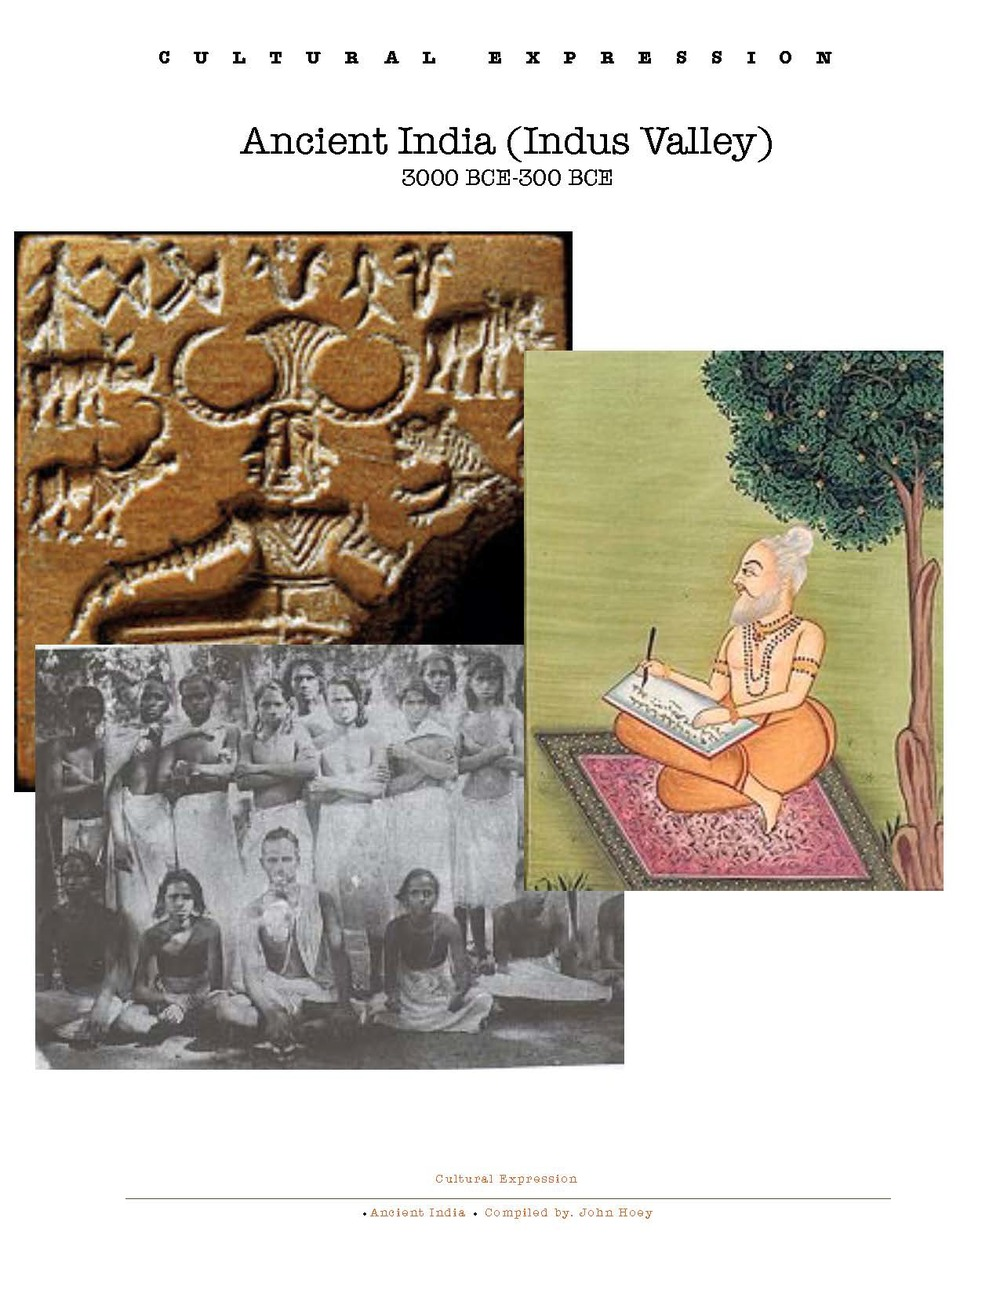 HOCE- Ancient India Notes (Other Interesting and Sundry)_Page_001.jpg